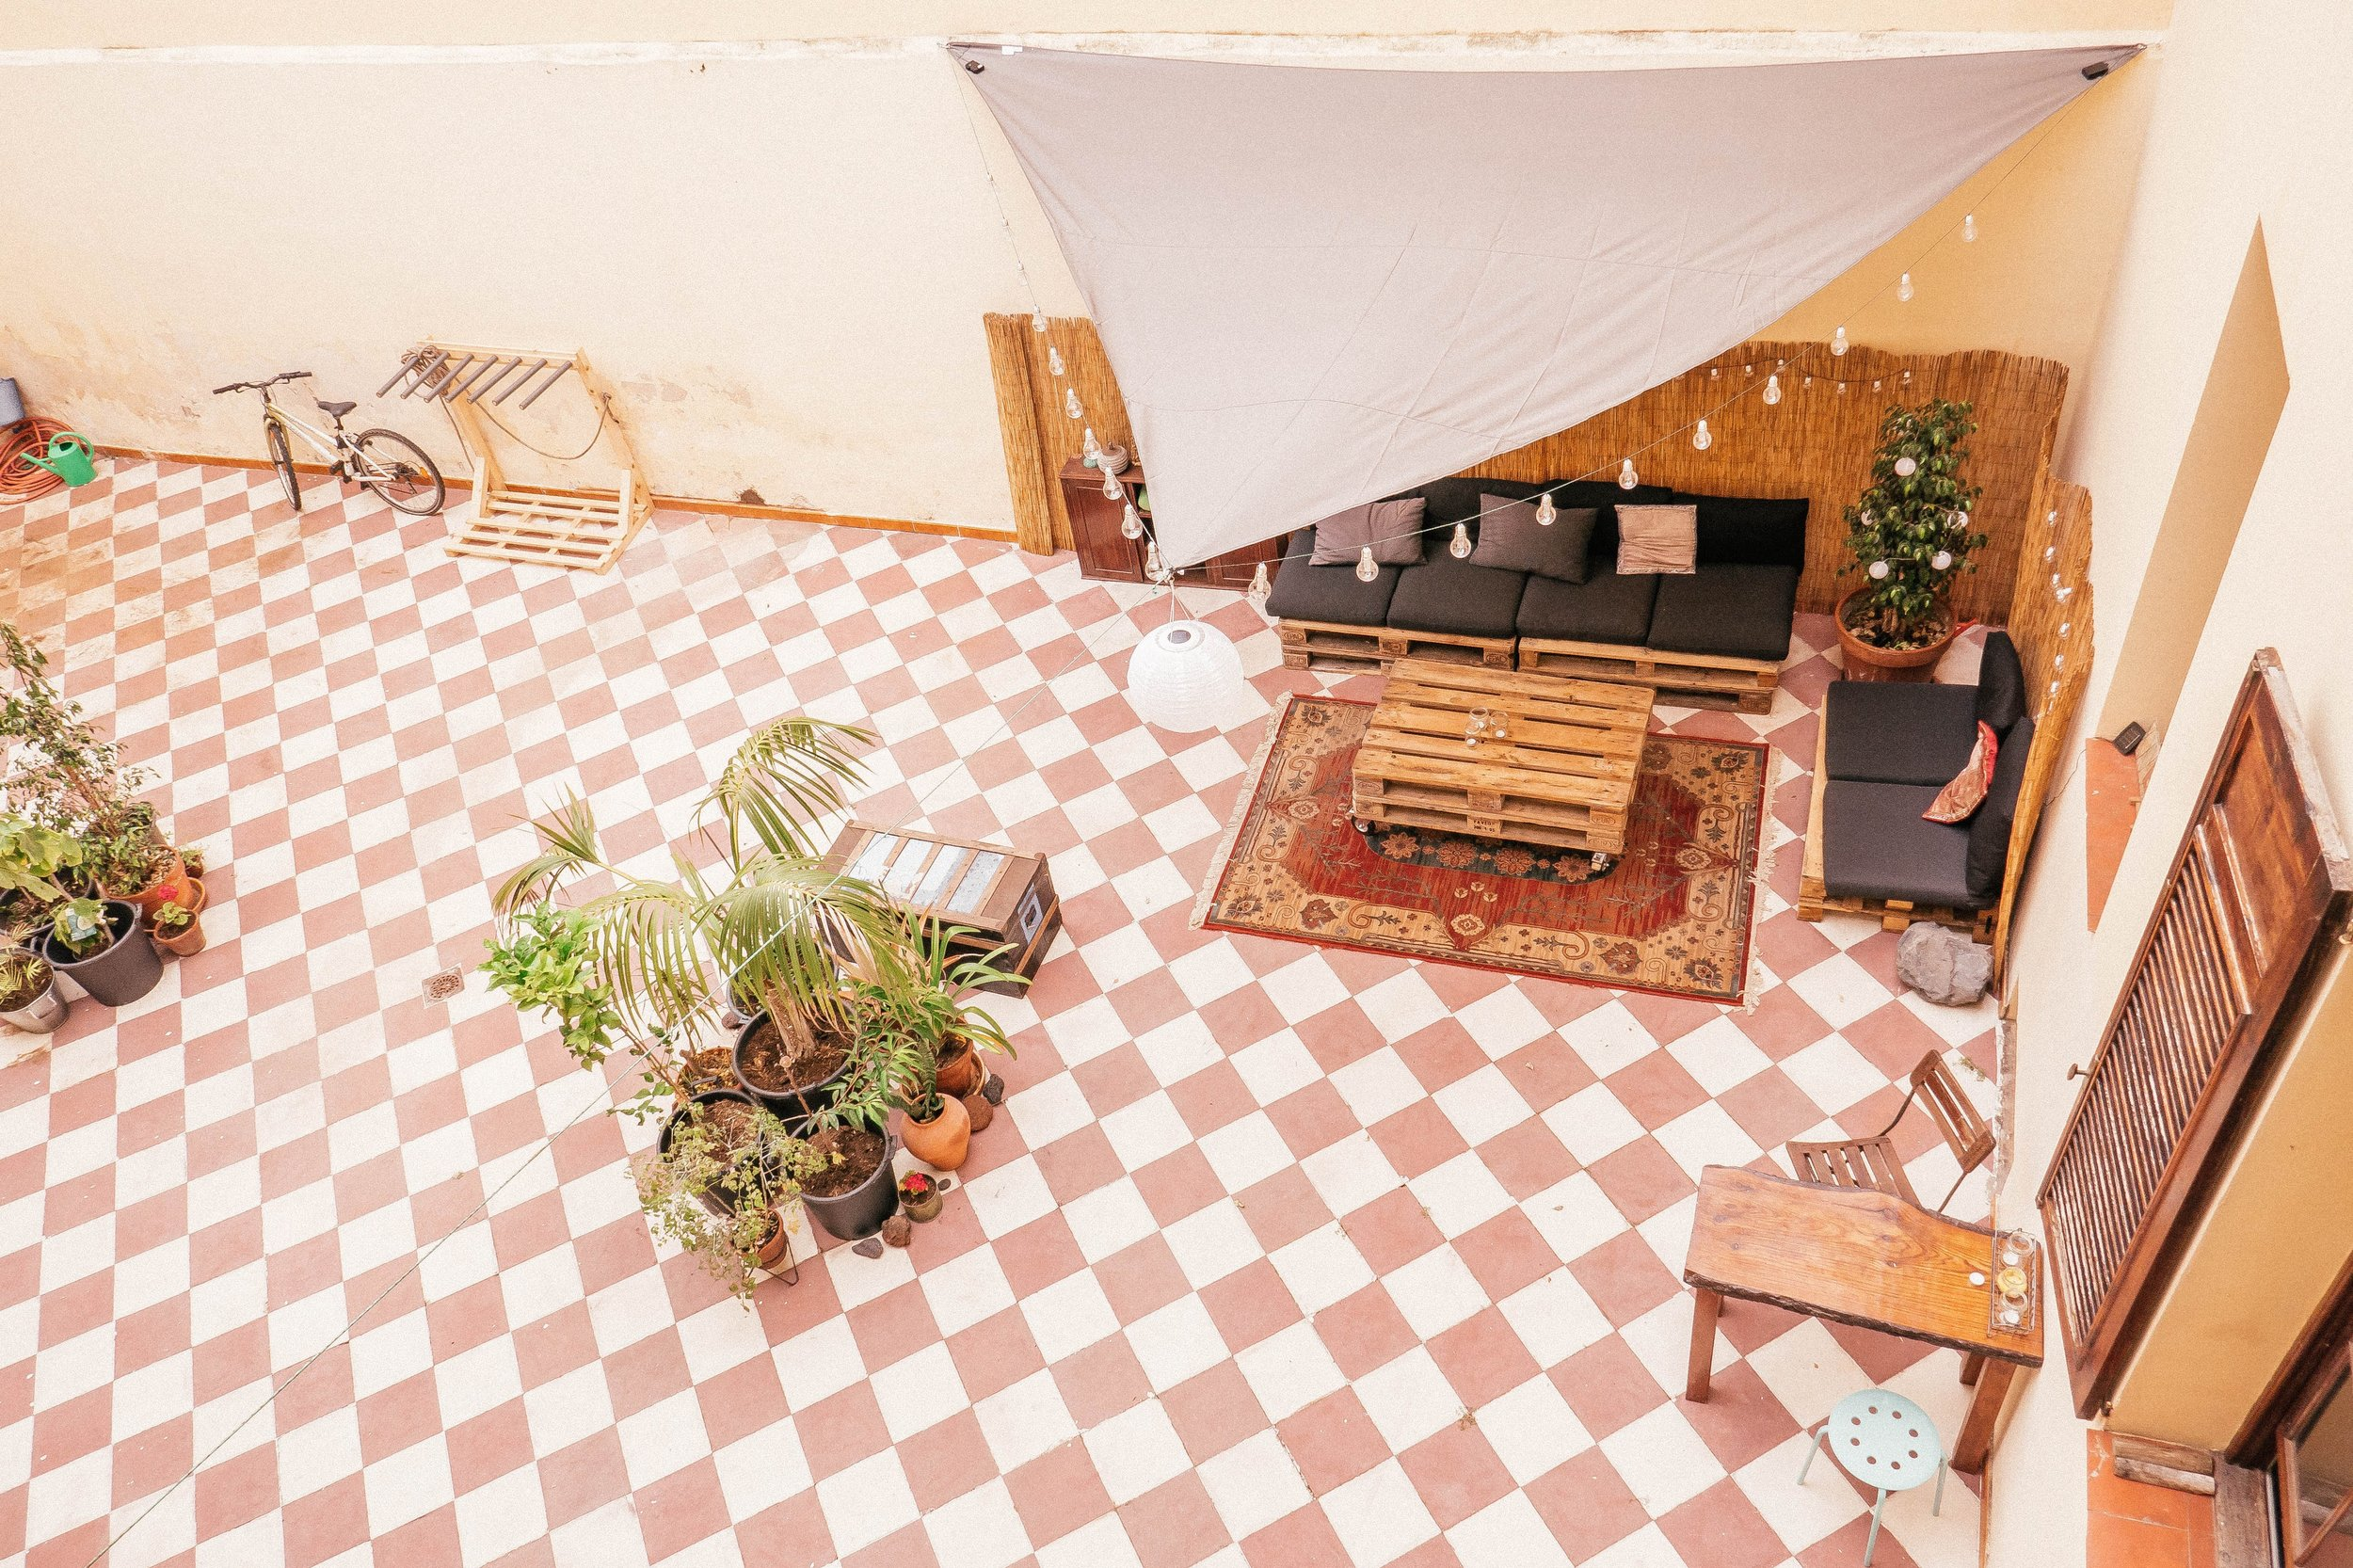 nine-coliving-patio-new (1 of 1) (2).jpg